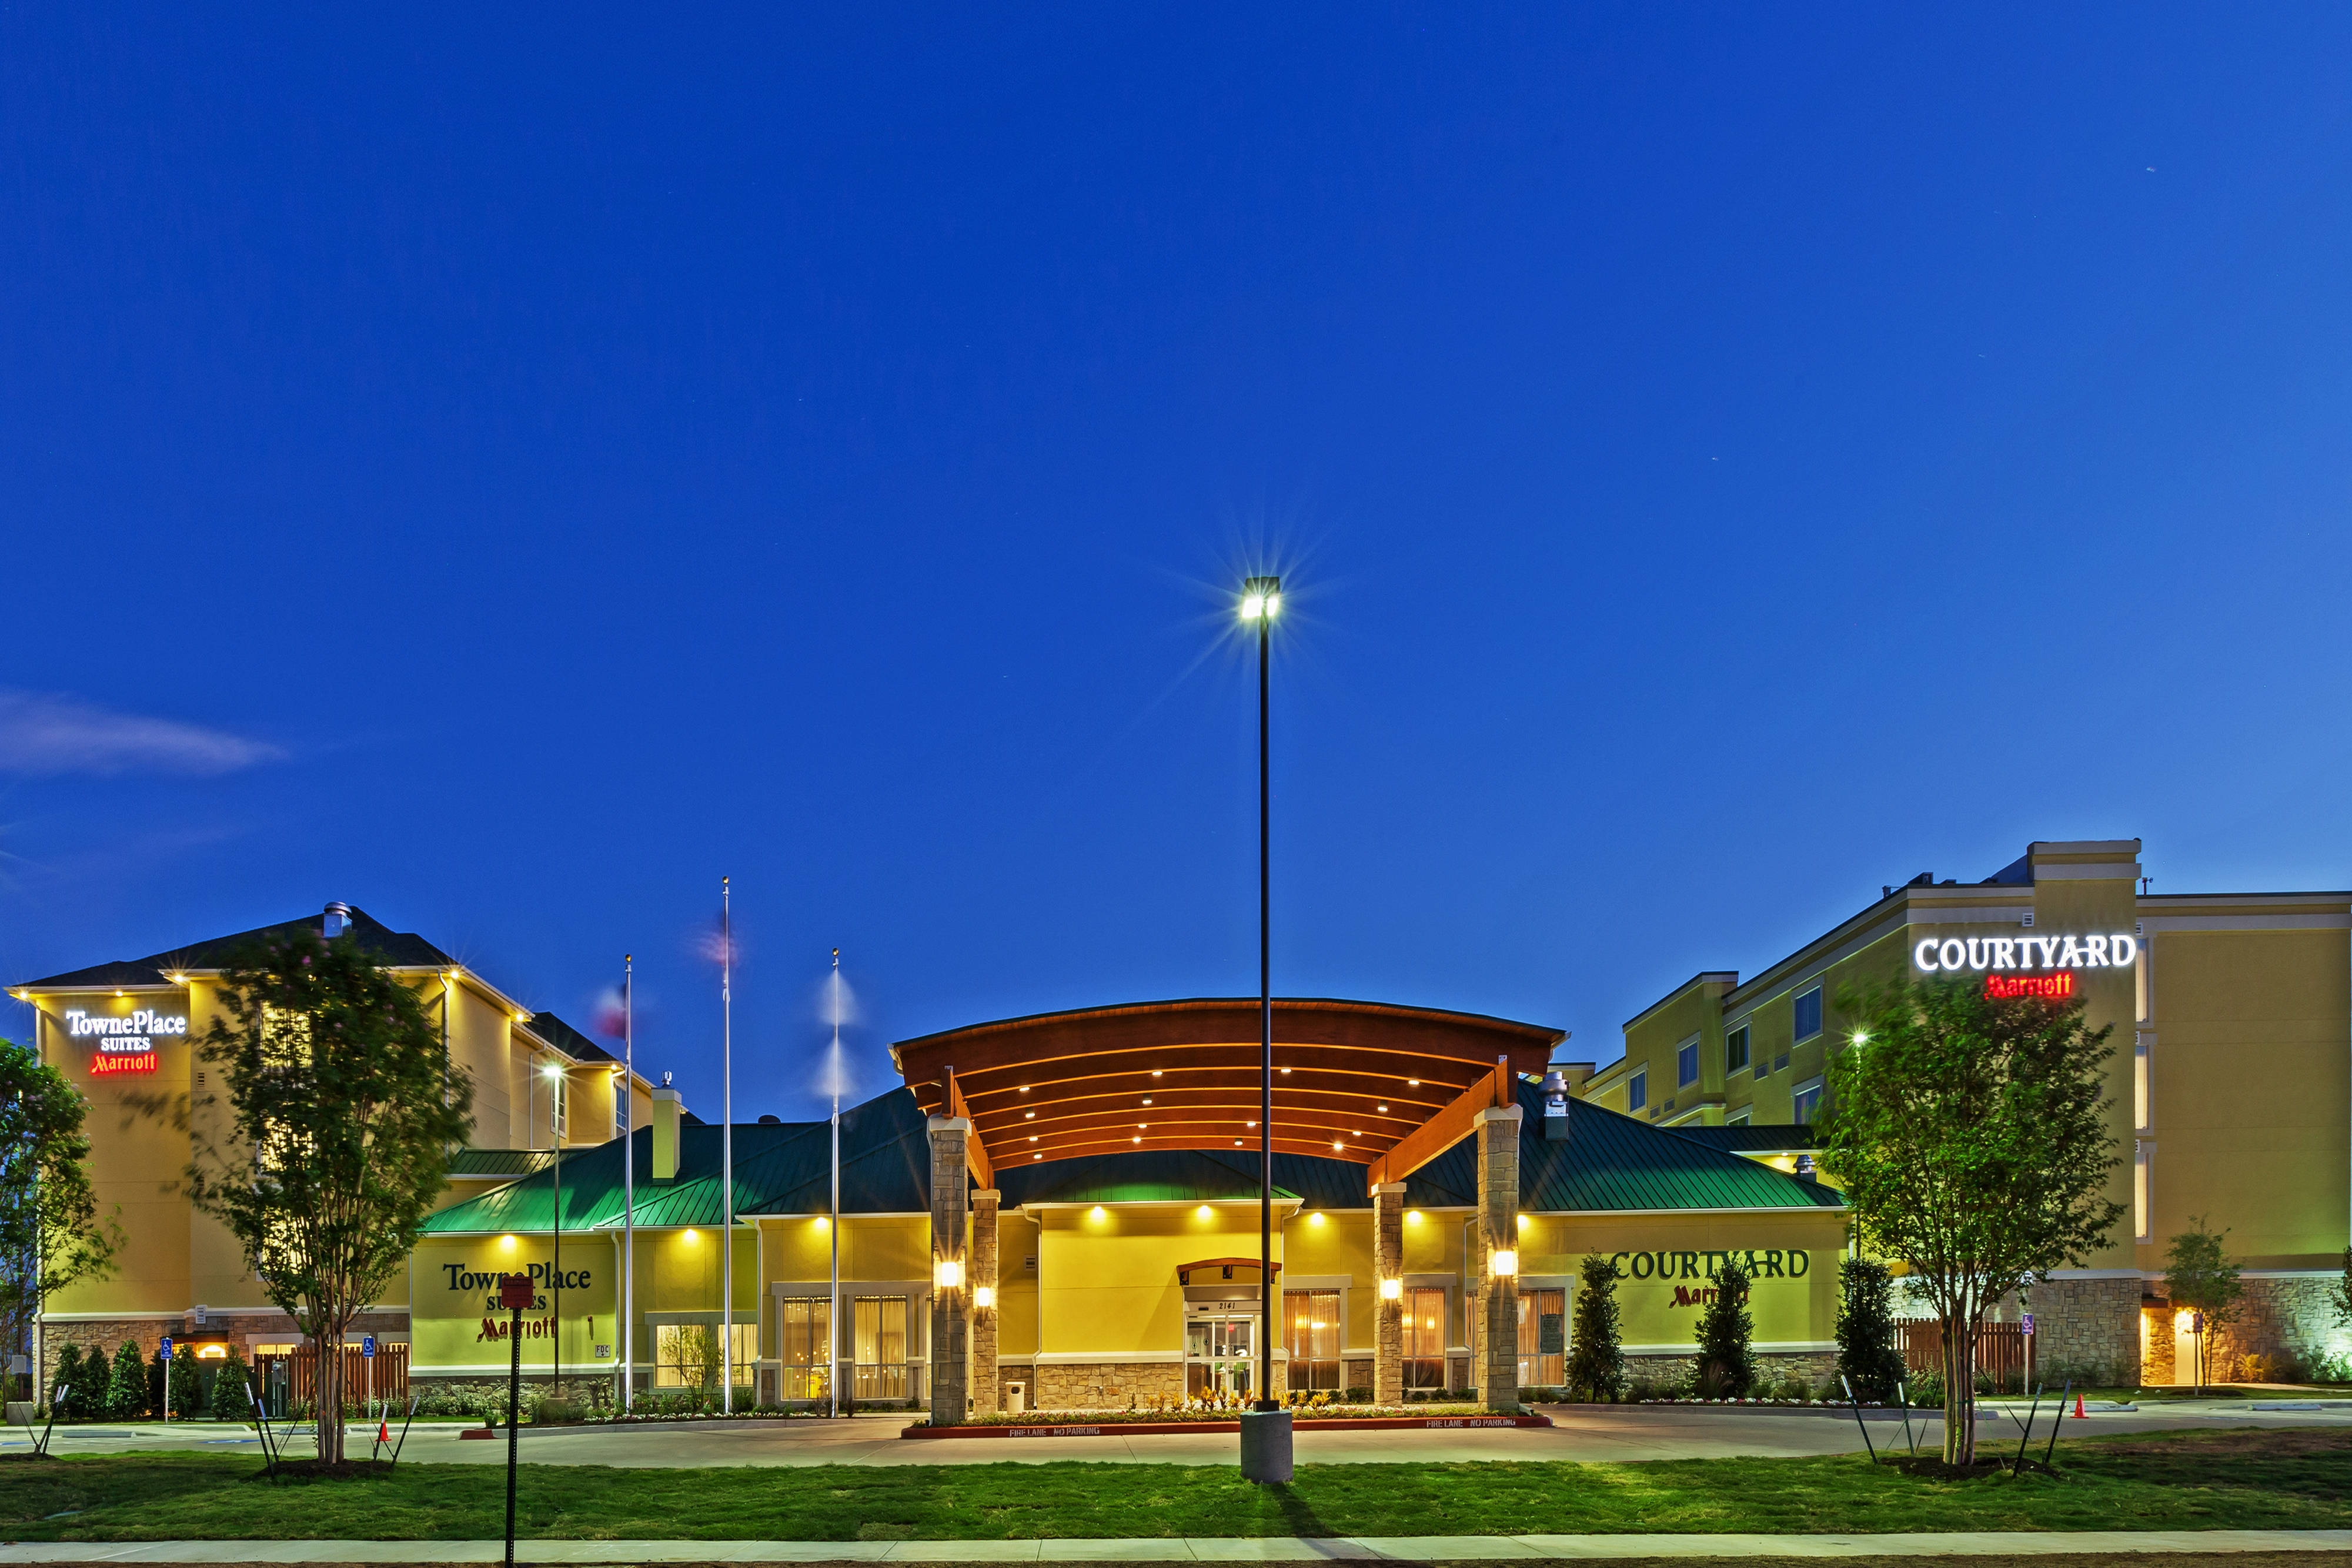 Courtyard and TownePlace Suites Abilene